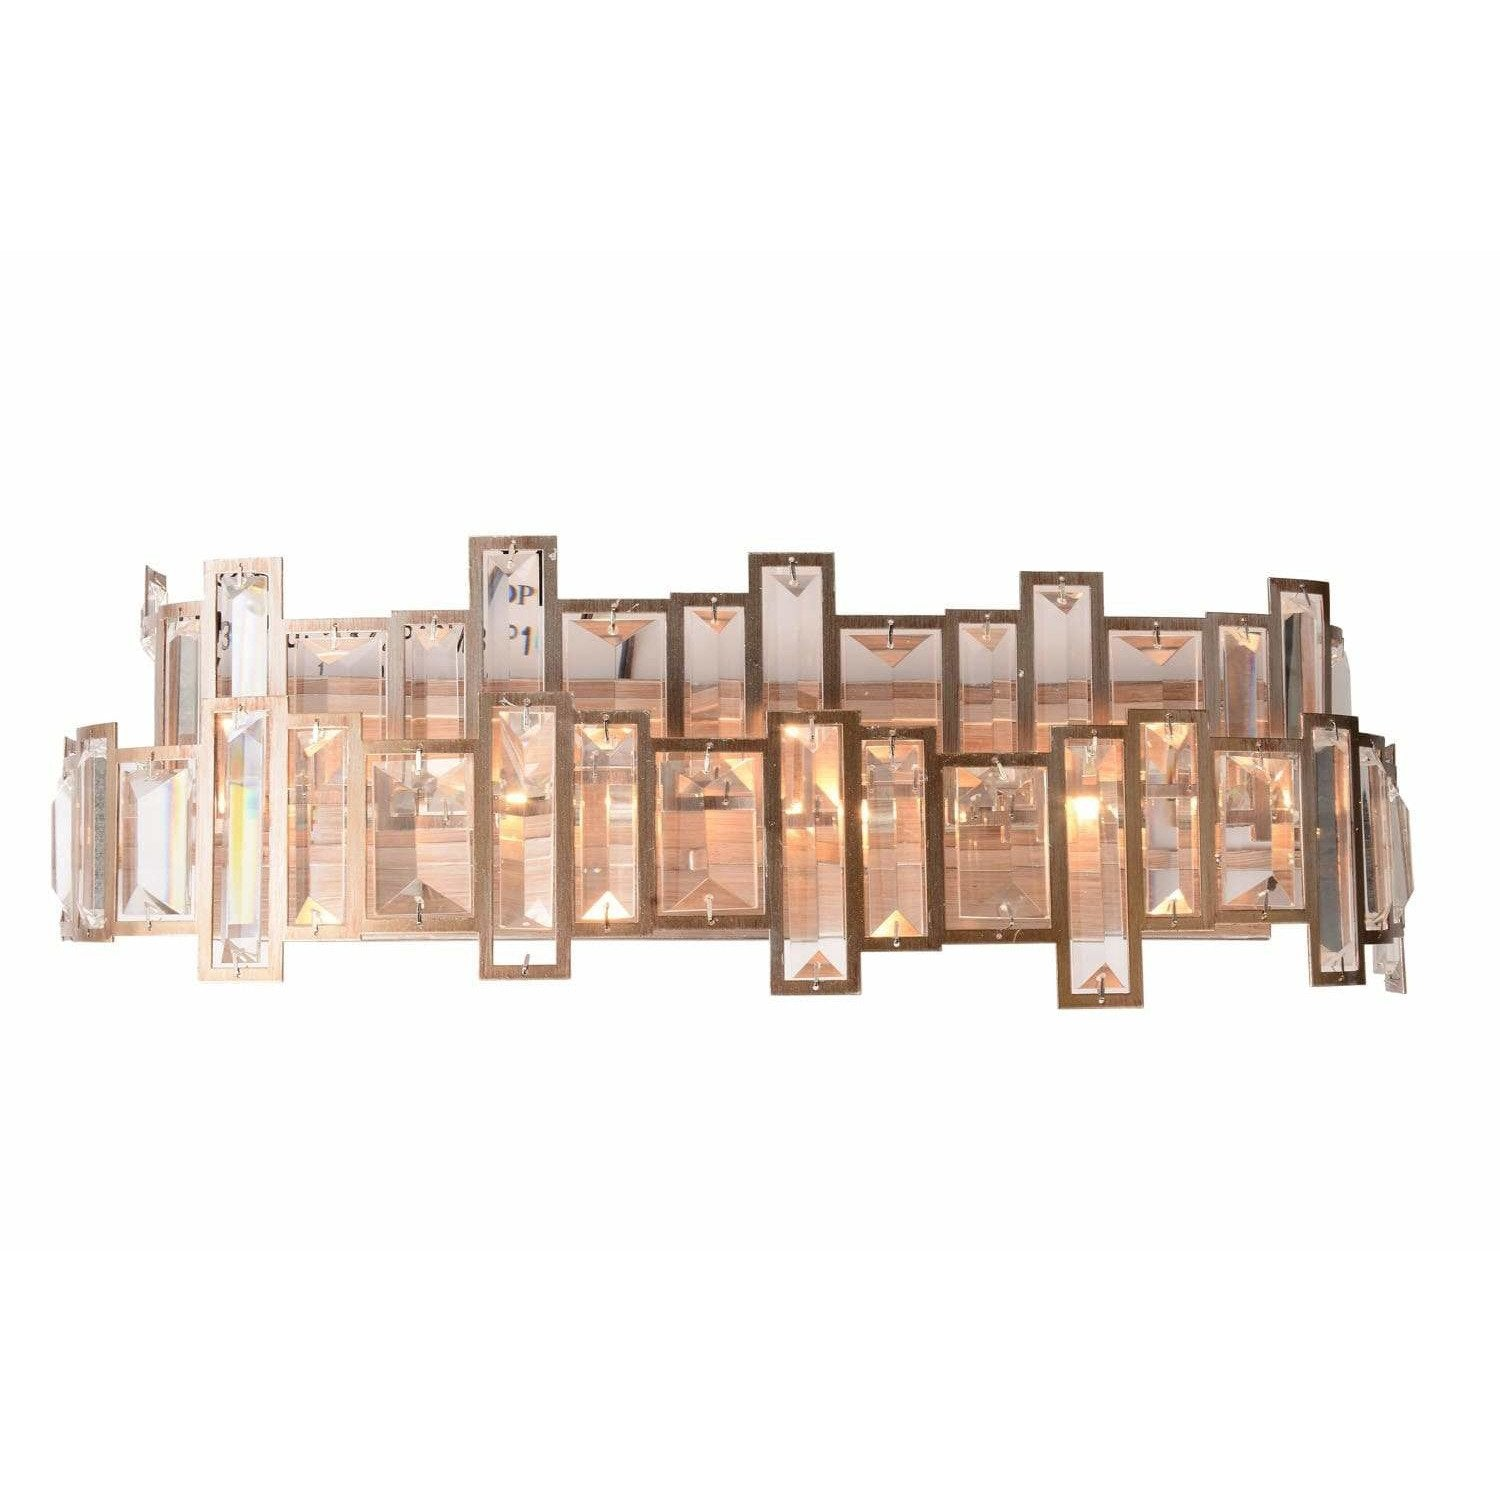 CWI Lighting Wall Sconces Champagne / K9 Clear Quida 4 Light Wall Sconce with Champagne finish by CWI Lighting 9903W24-4-193